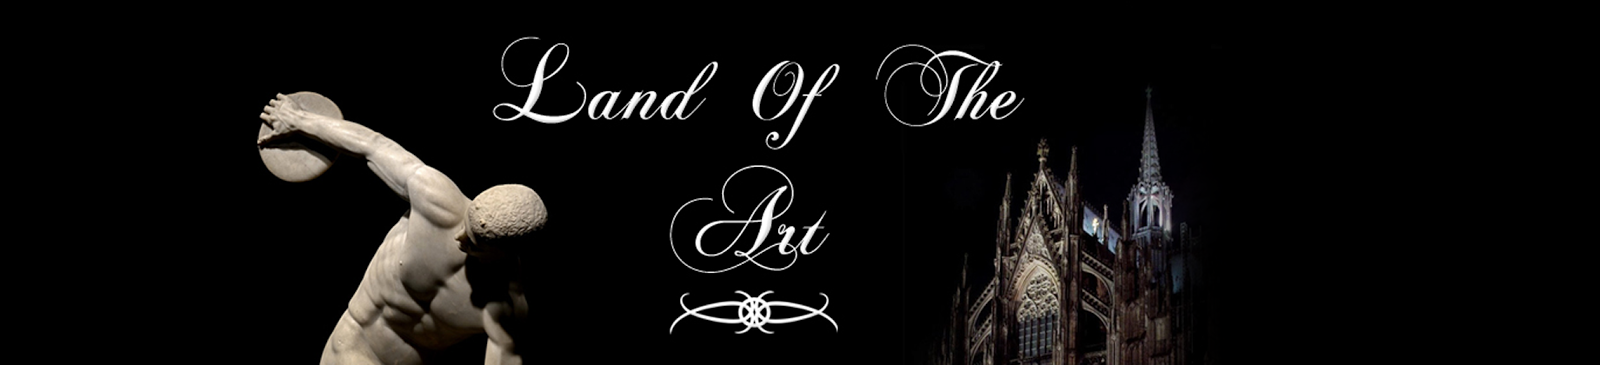 Land of the Art - Researches